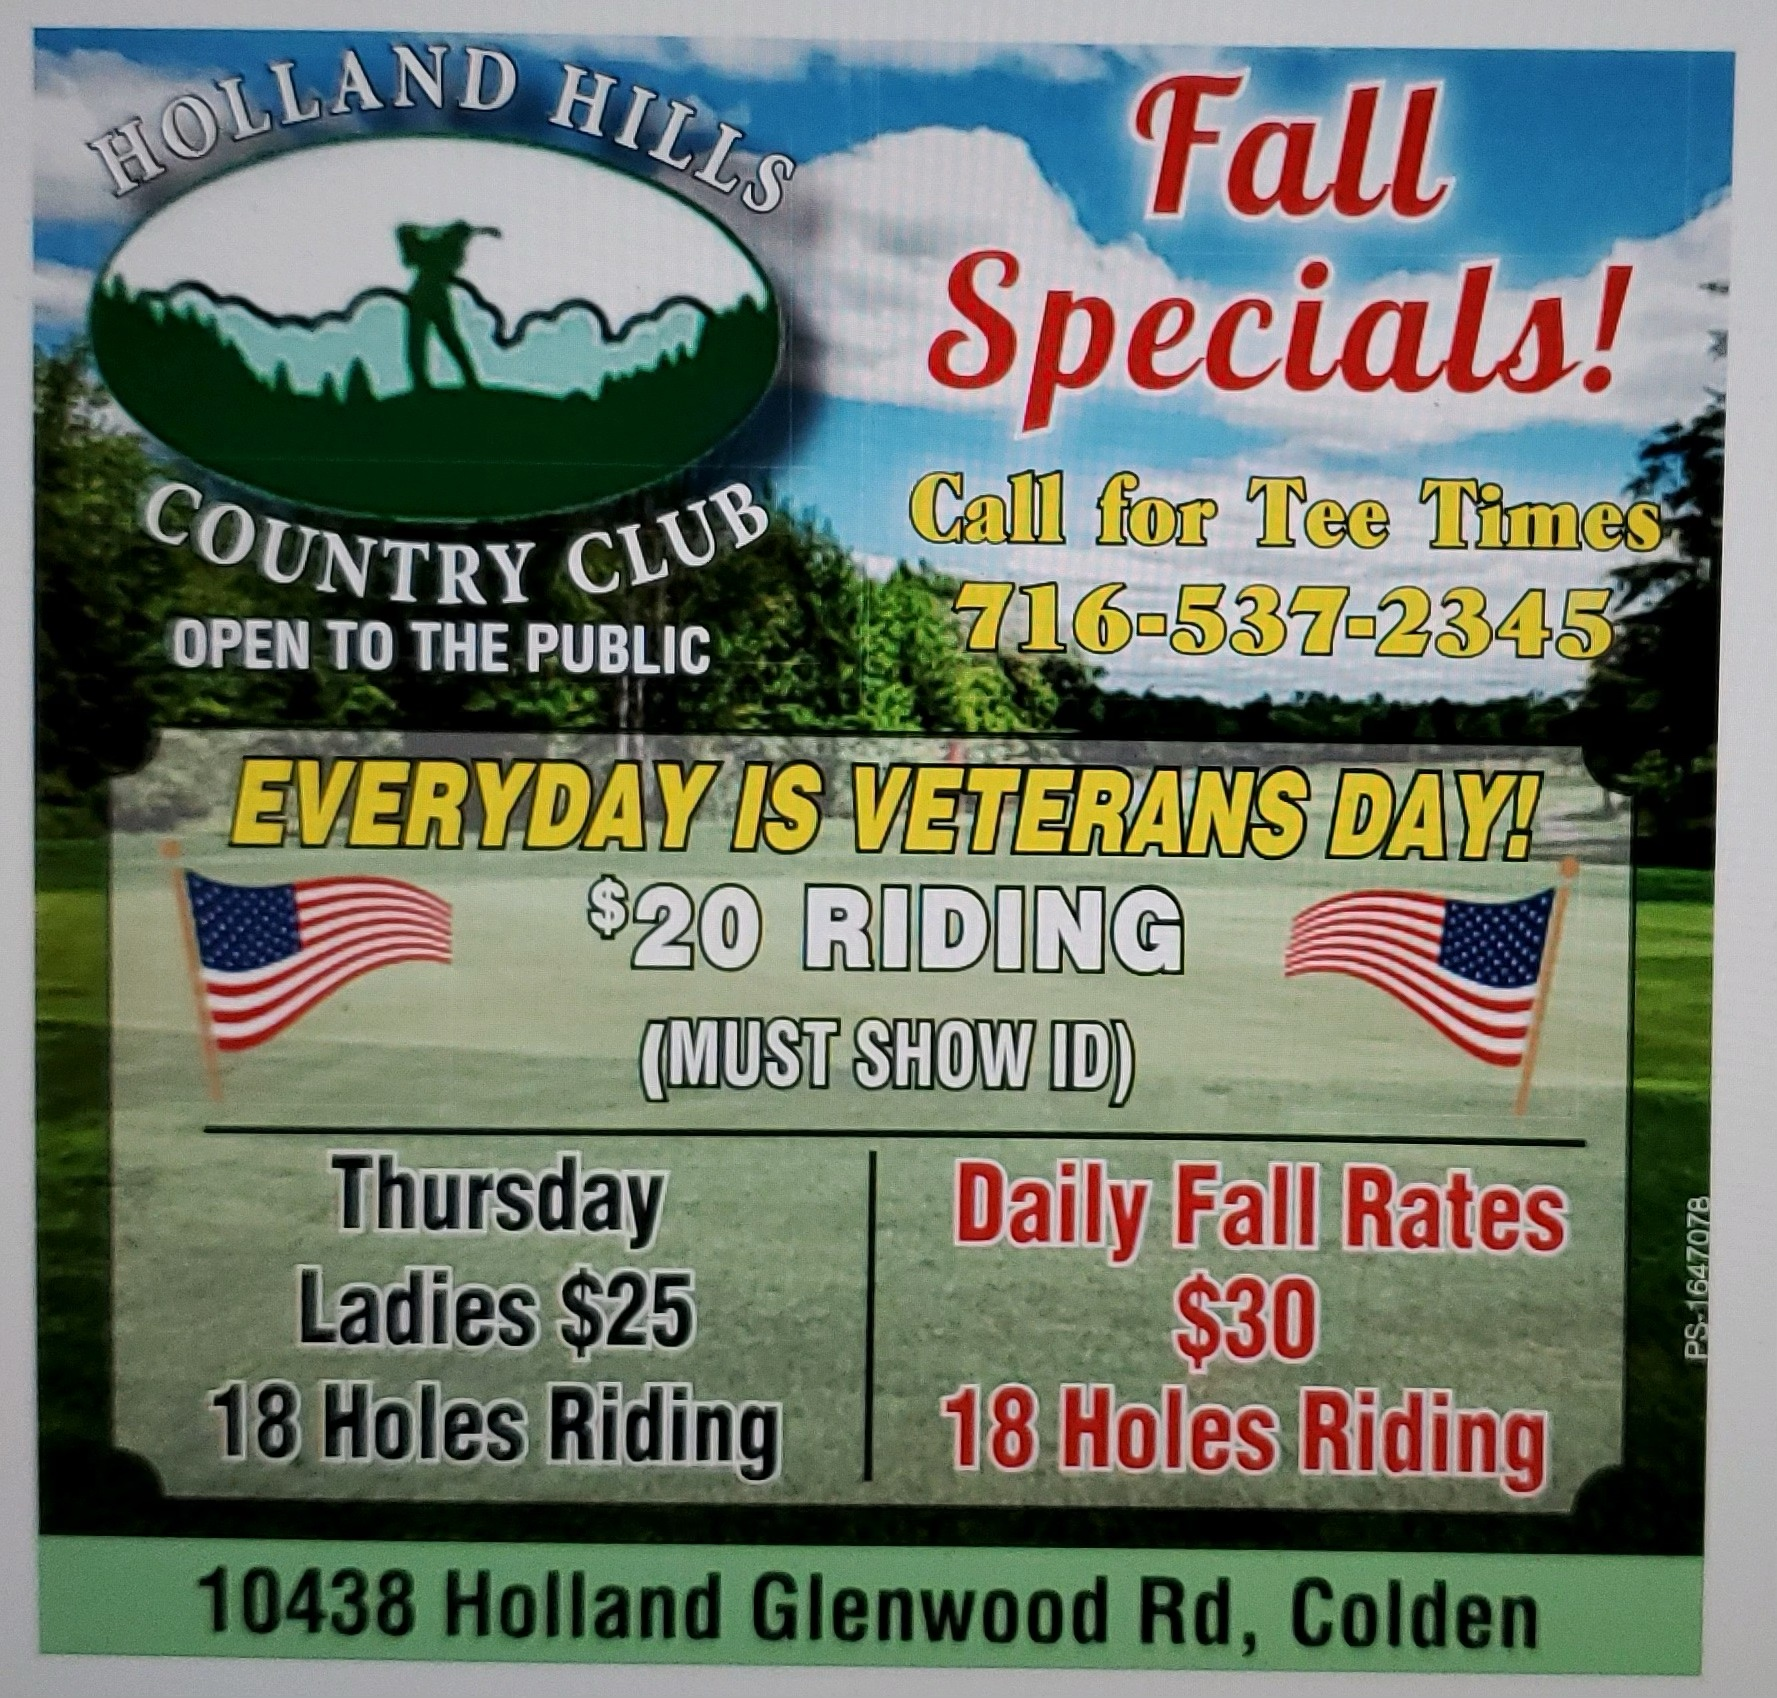 holland hills course